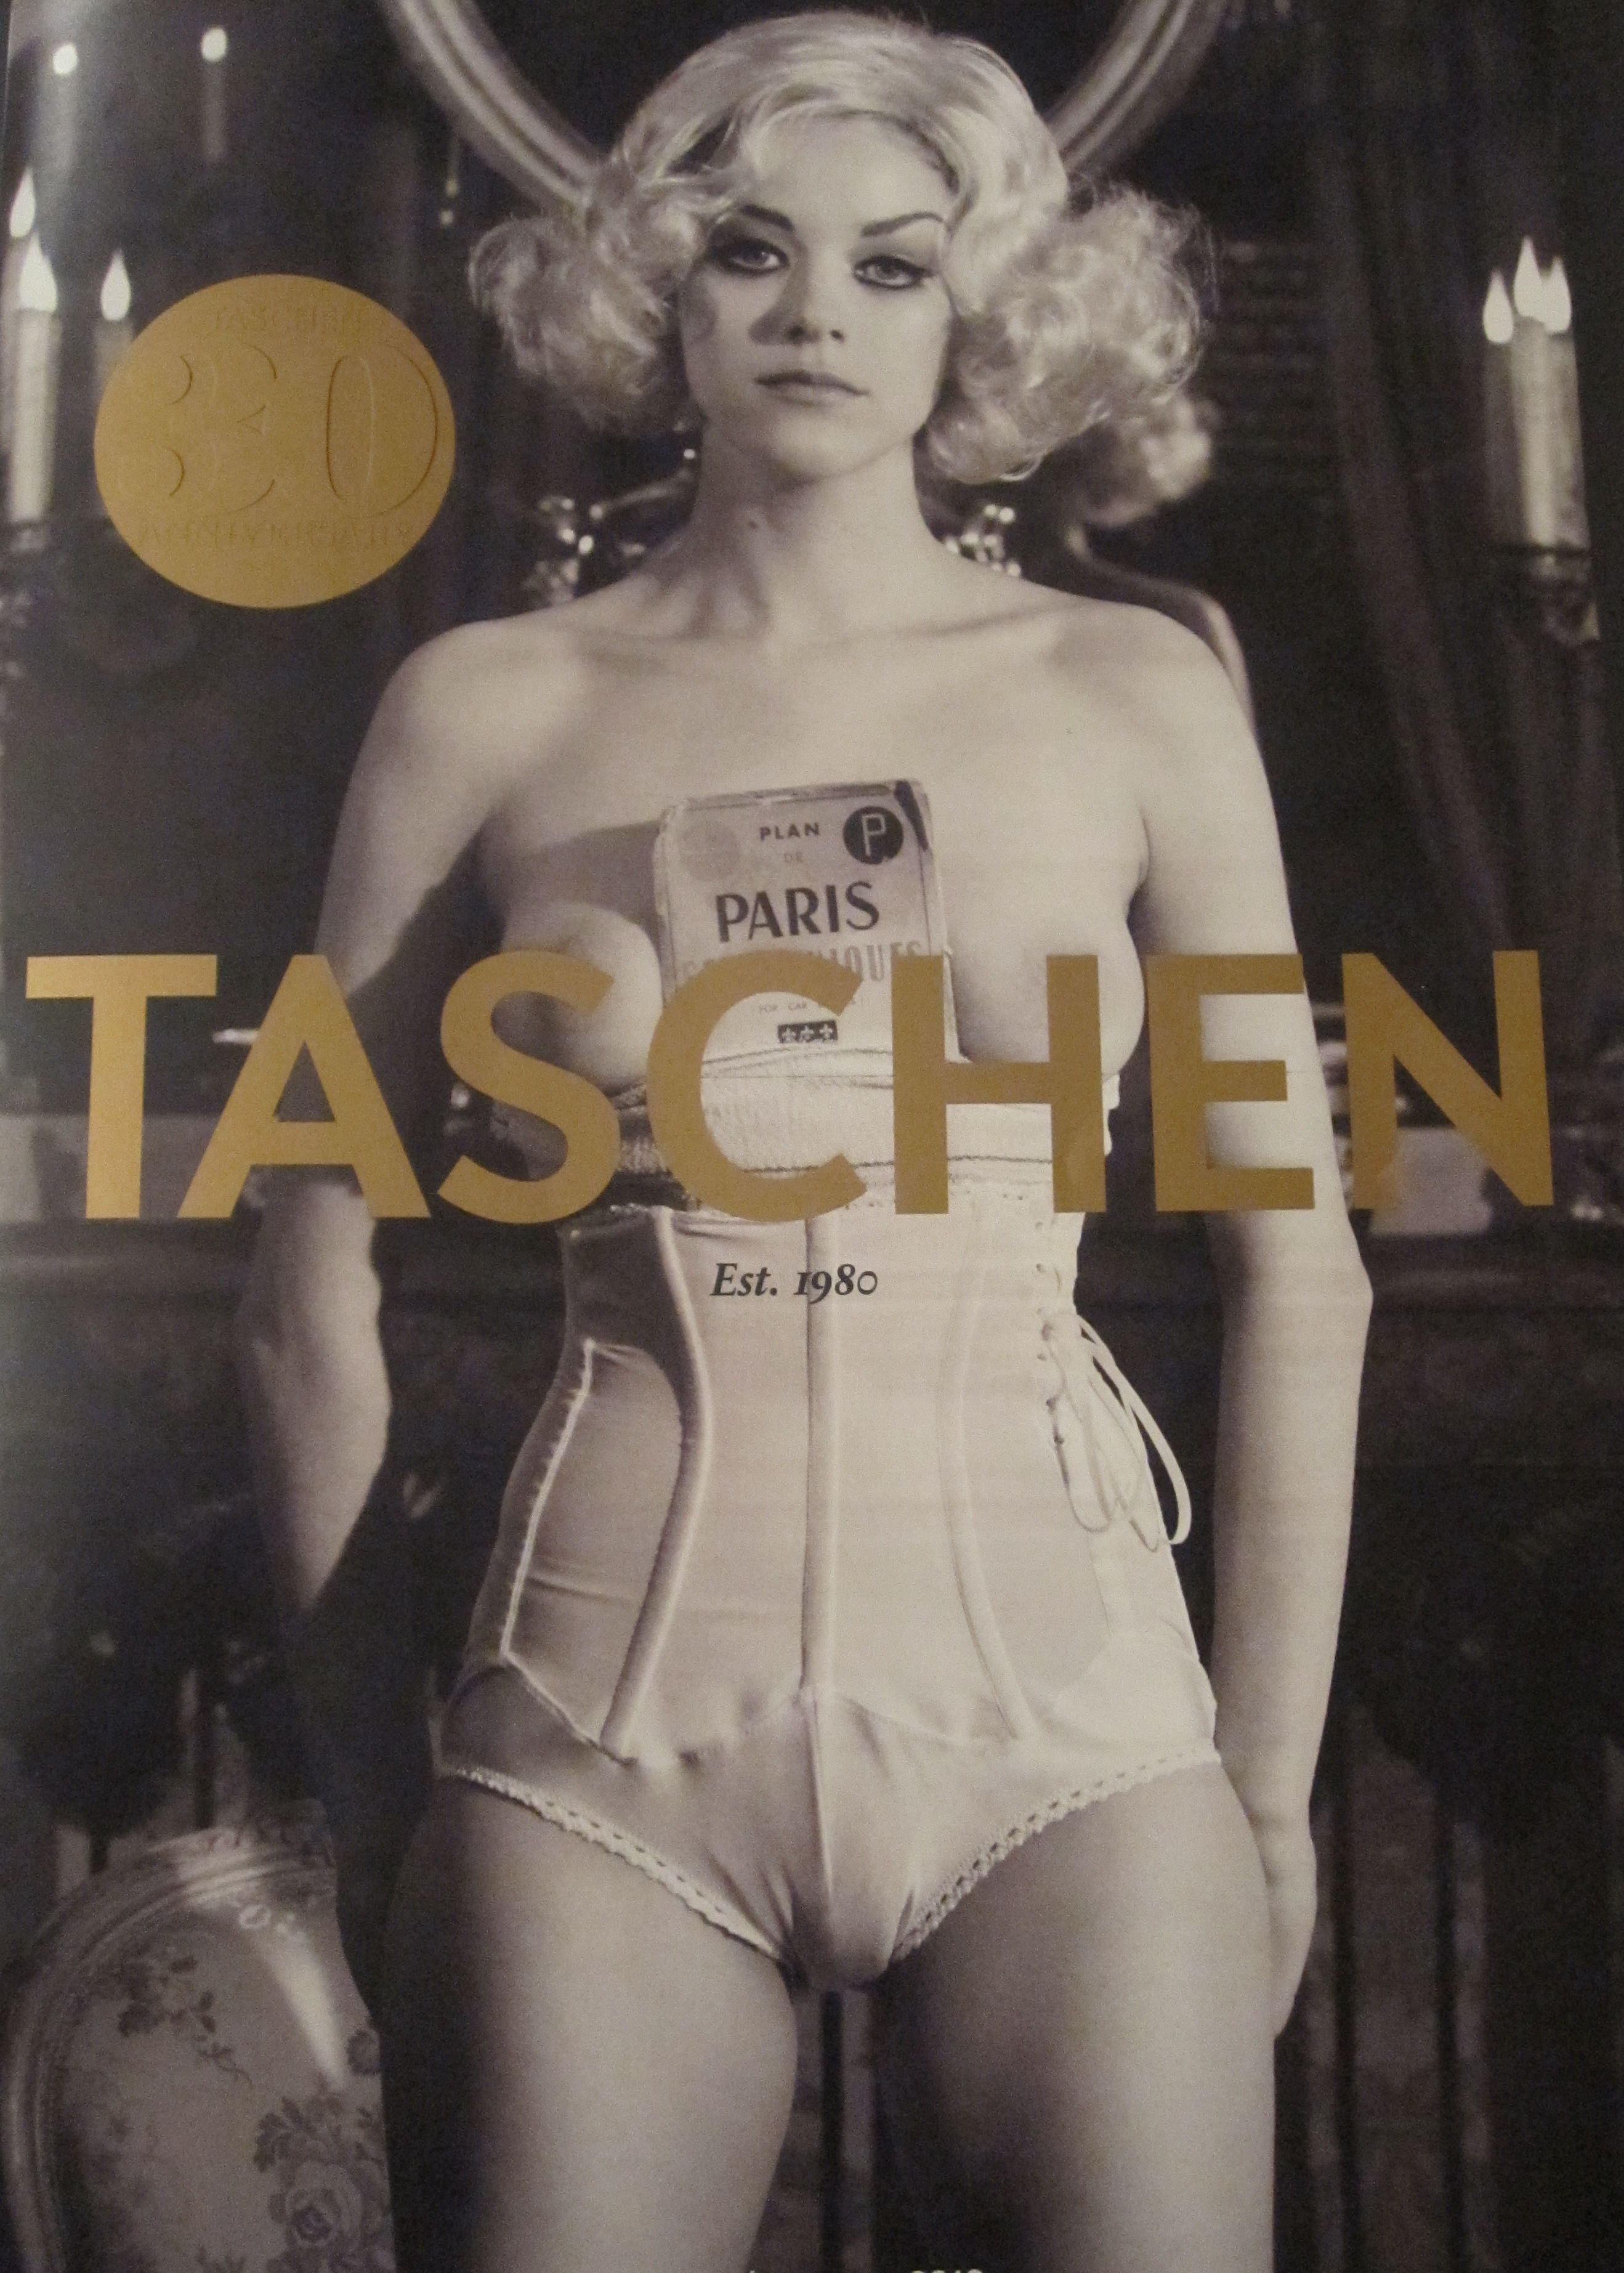 Find great deals on eBay for Taschen in Books About Nonfiction. Shop with confidence.